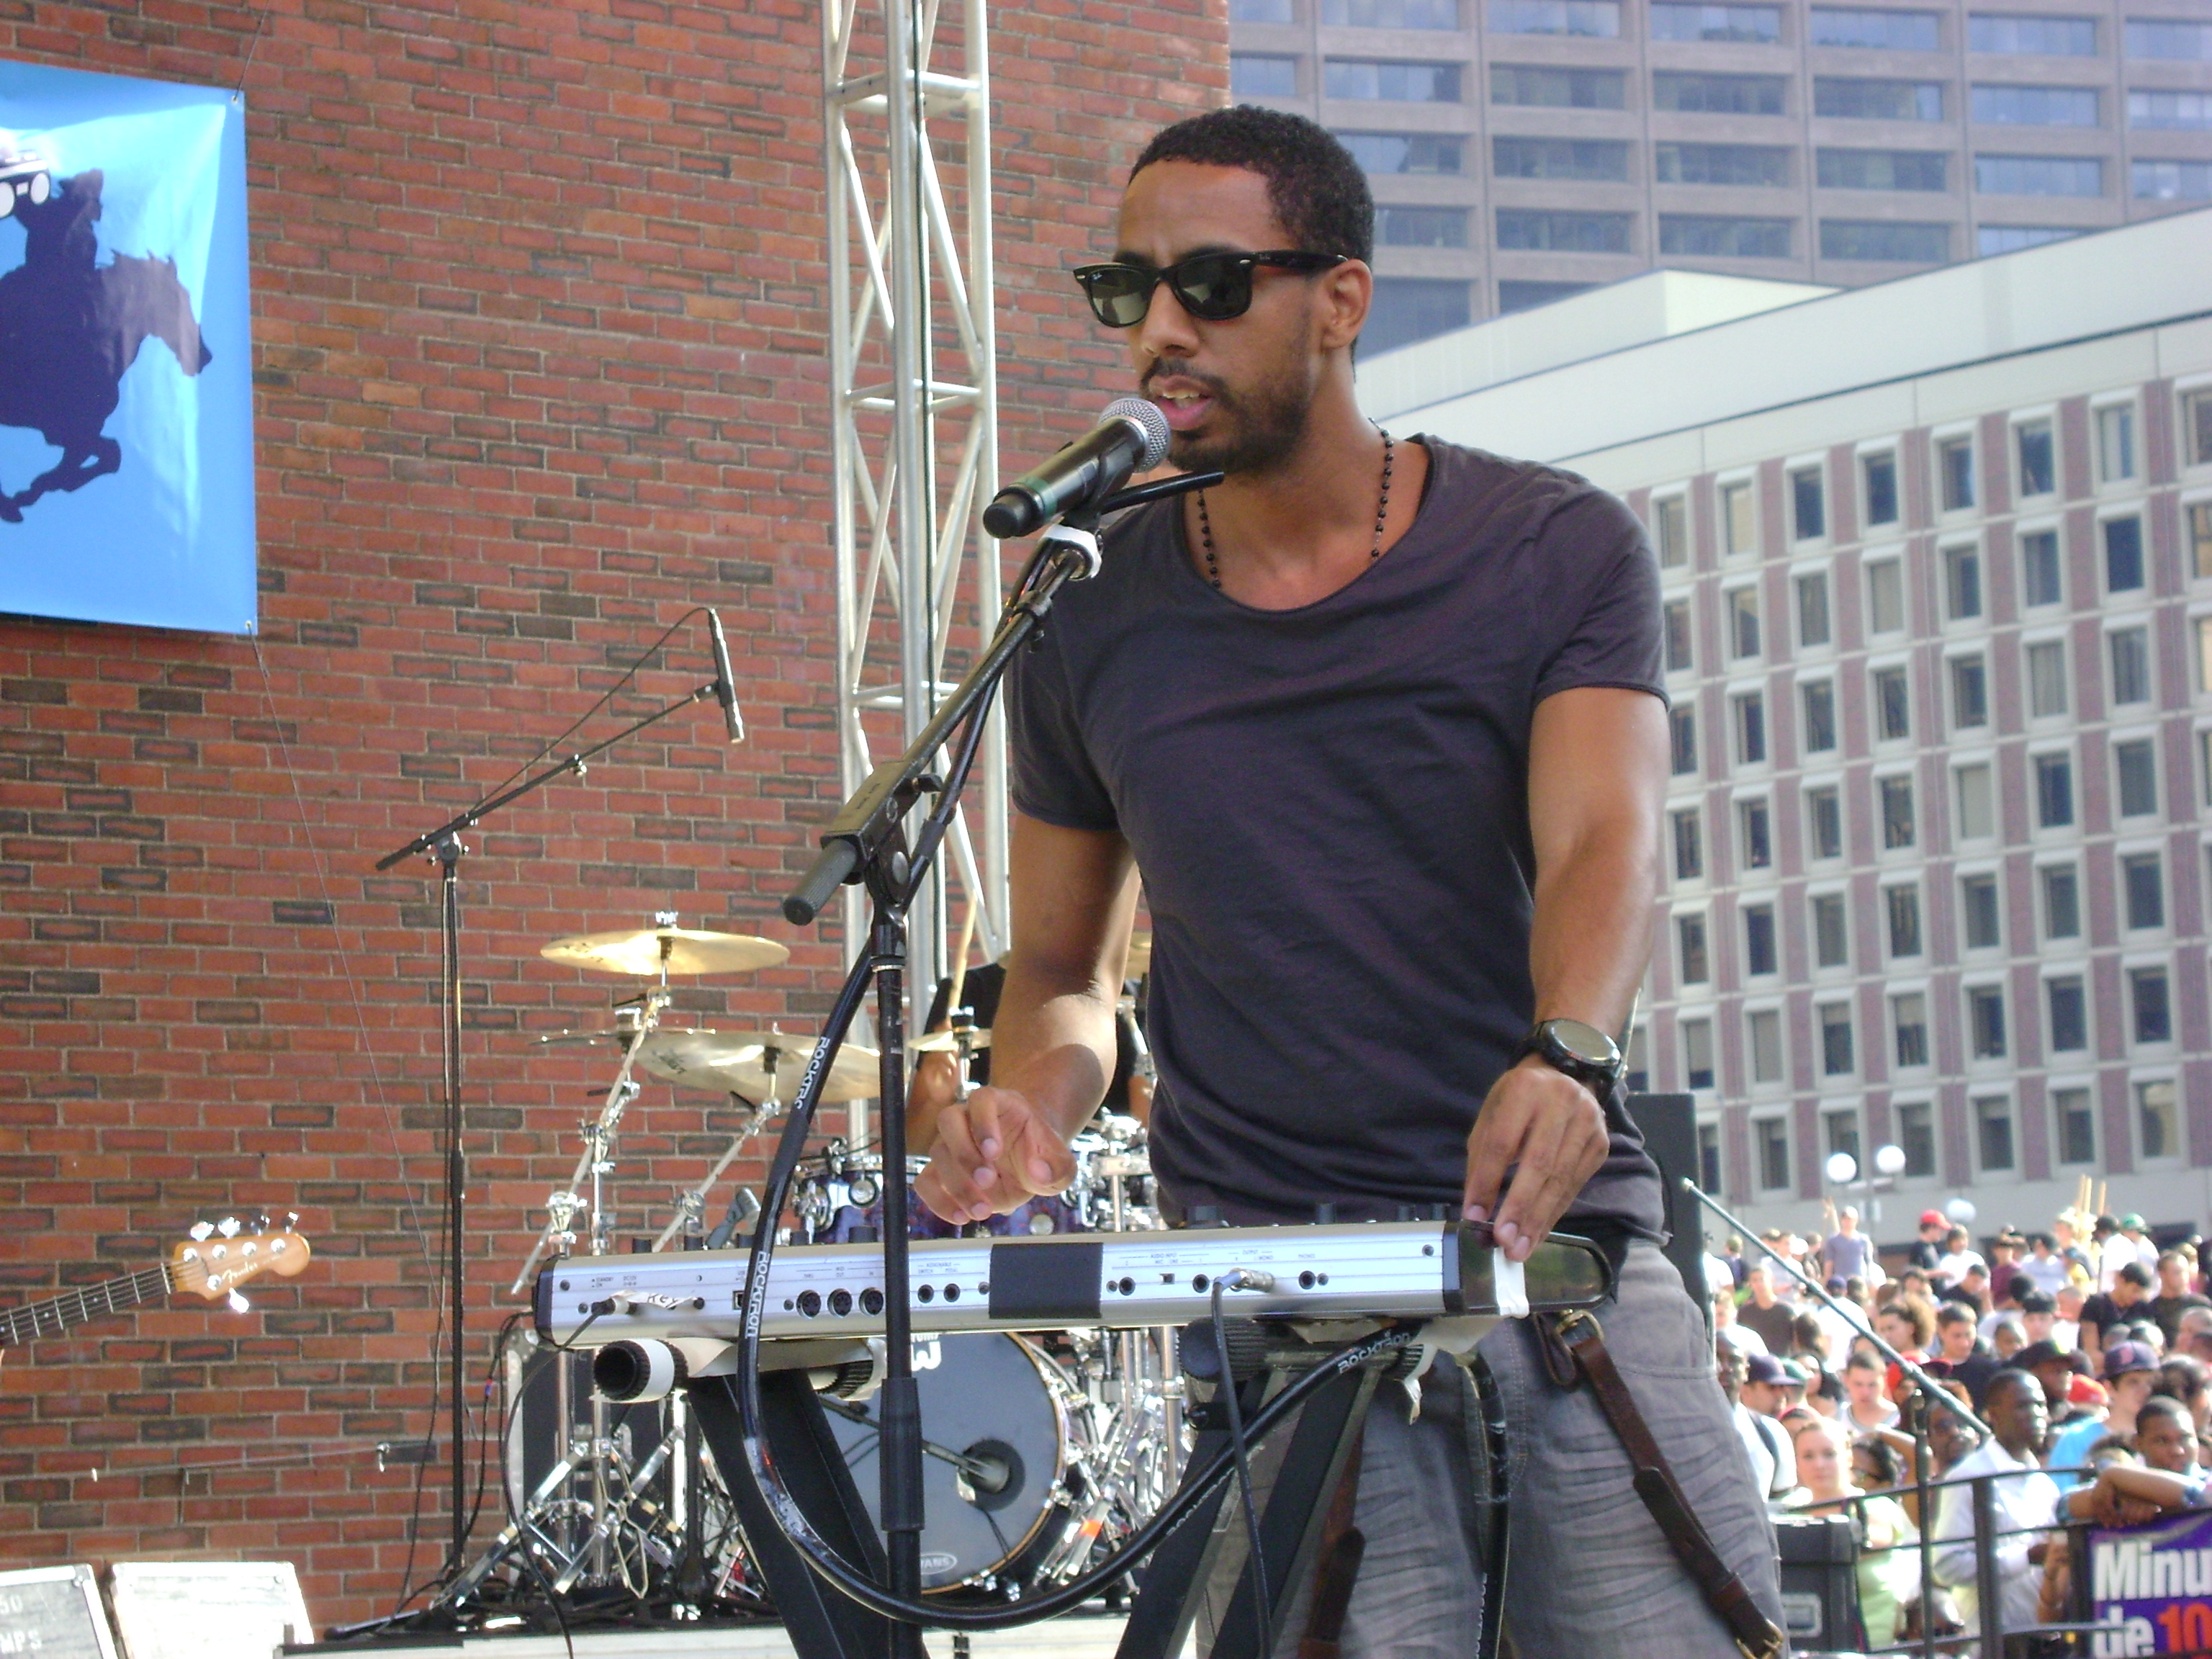 Ryan Leslie performing at the B.U.M.P. Music Festival in Boston in 2010.